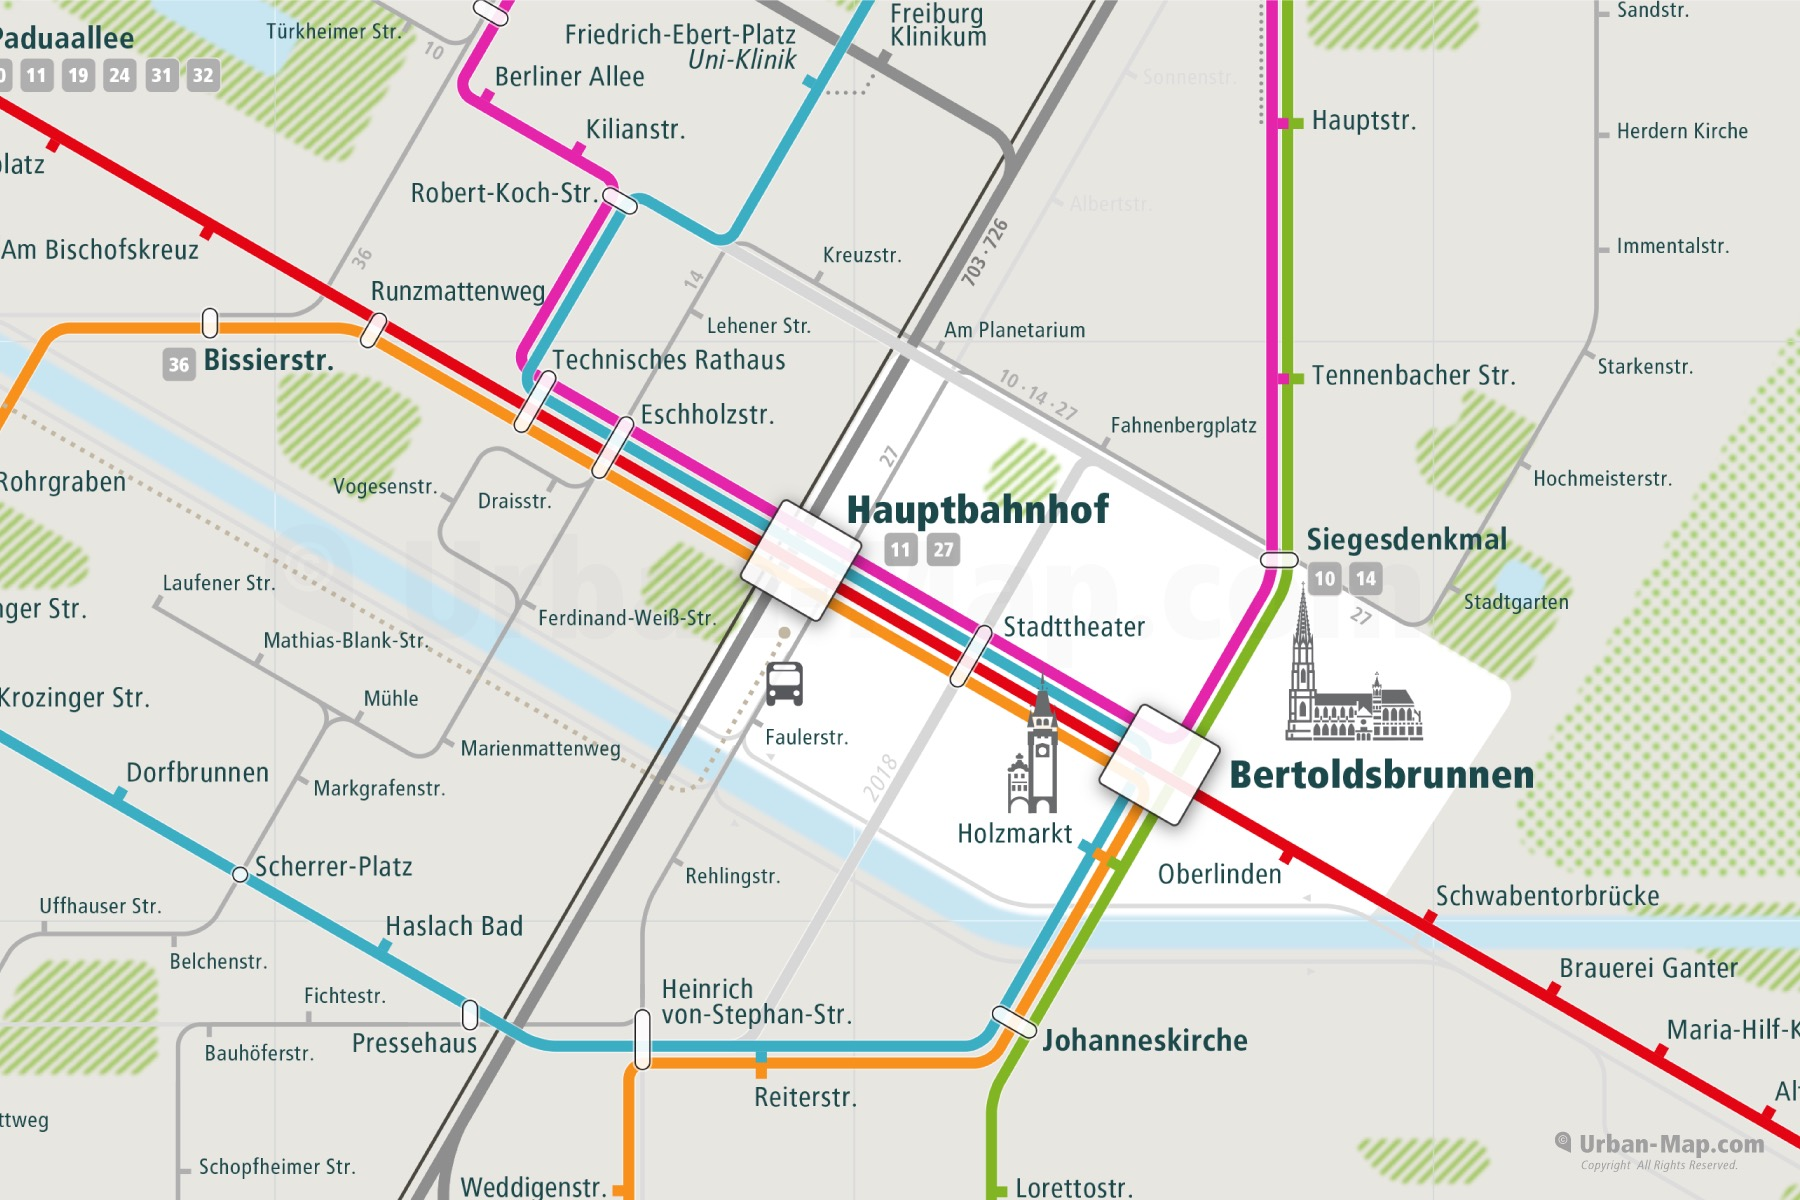 Freiburg City Rail Map shows the train and public transportation routes of tram, bus - Close-Up